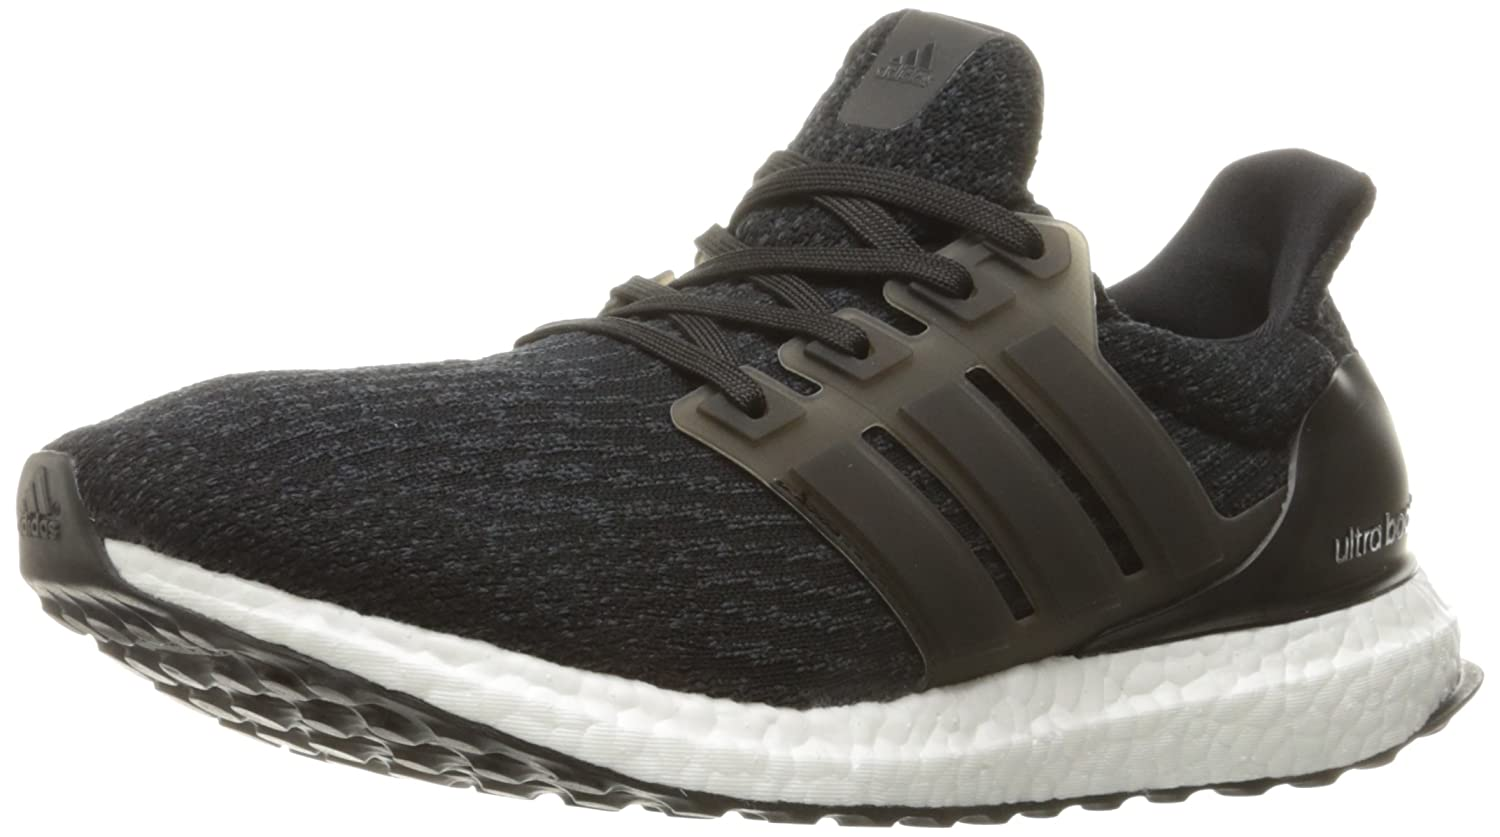 adidas B01H6455HA Performance Men's Ultra Boost M Running Shoe B01H6455HA adidas 5 D(M) US|Black/Black/Dark Grey 2c19b2